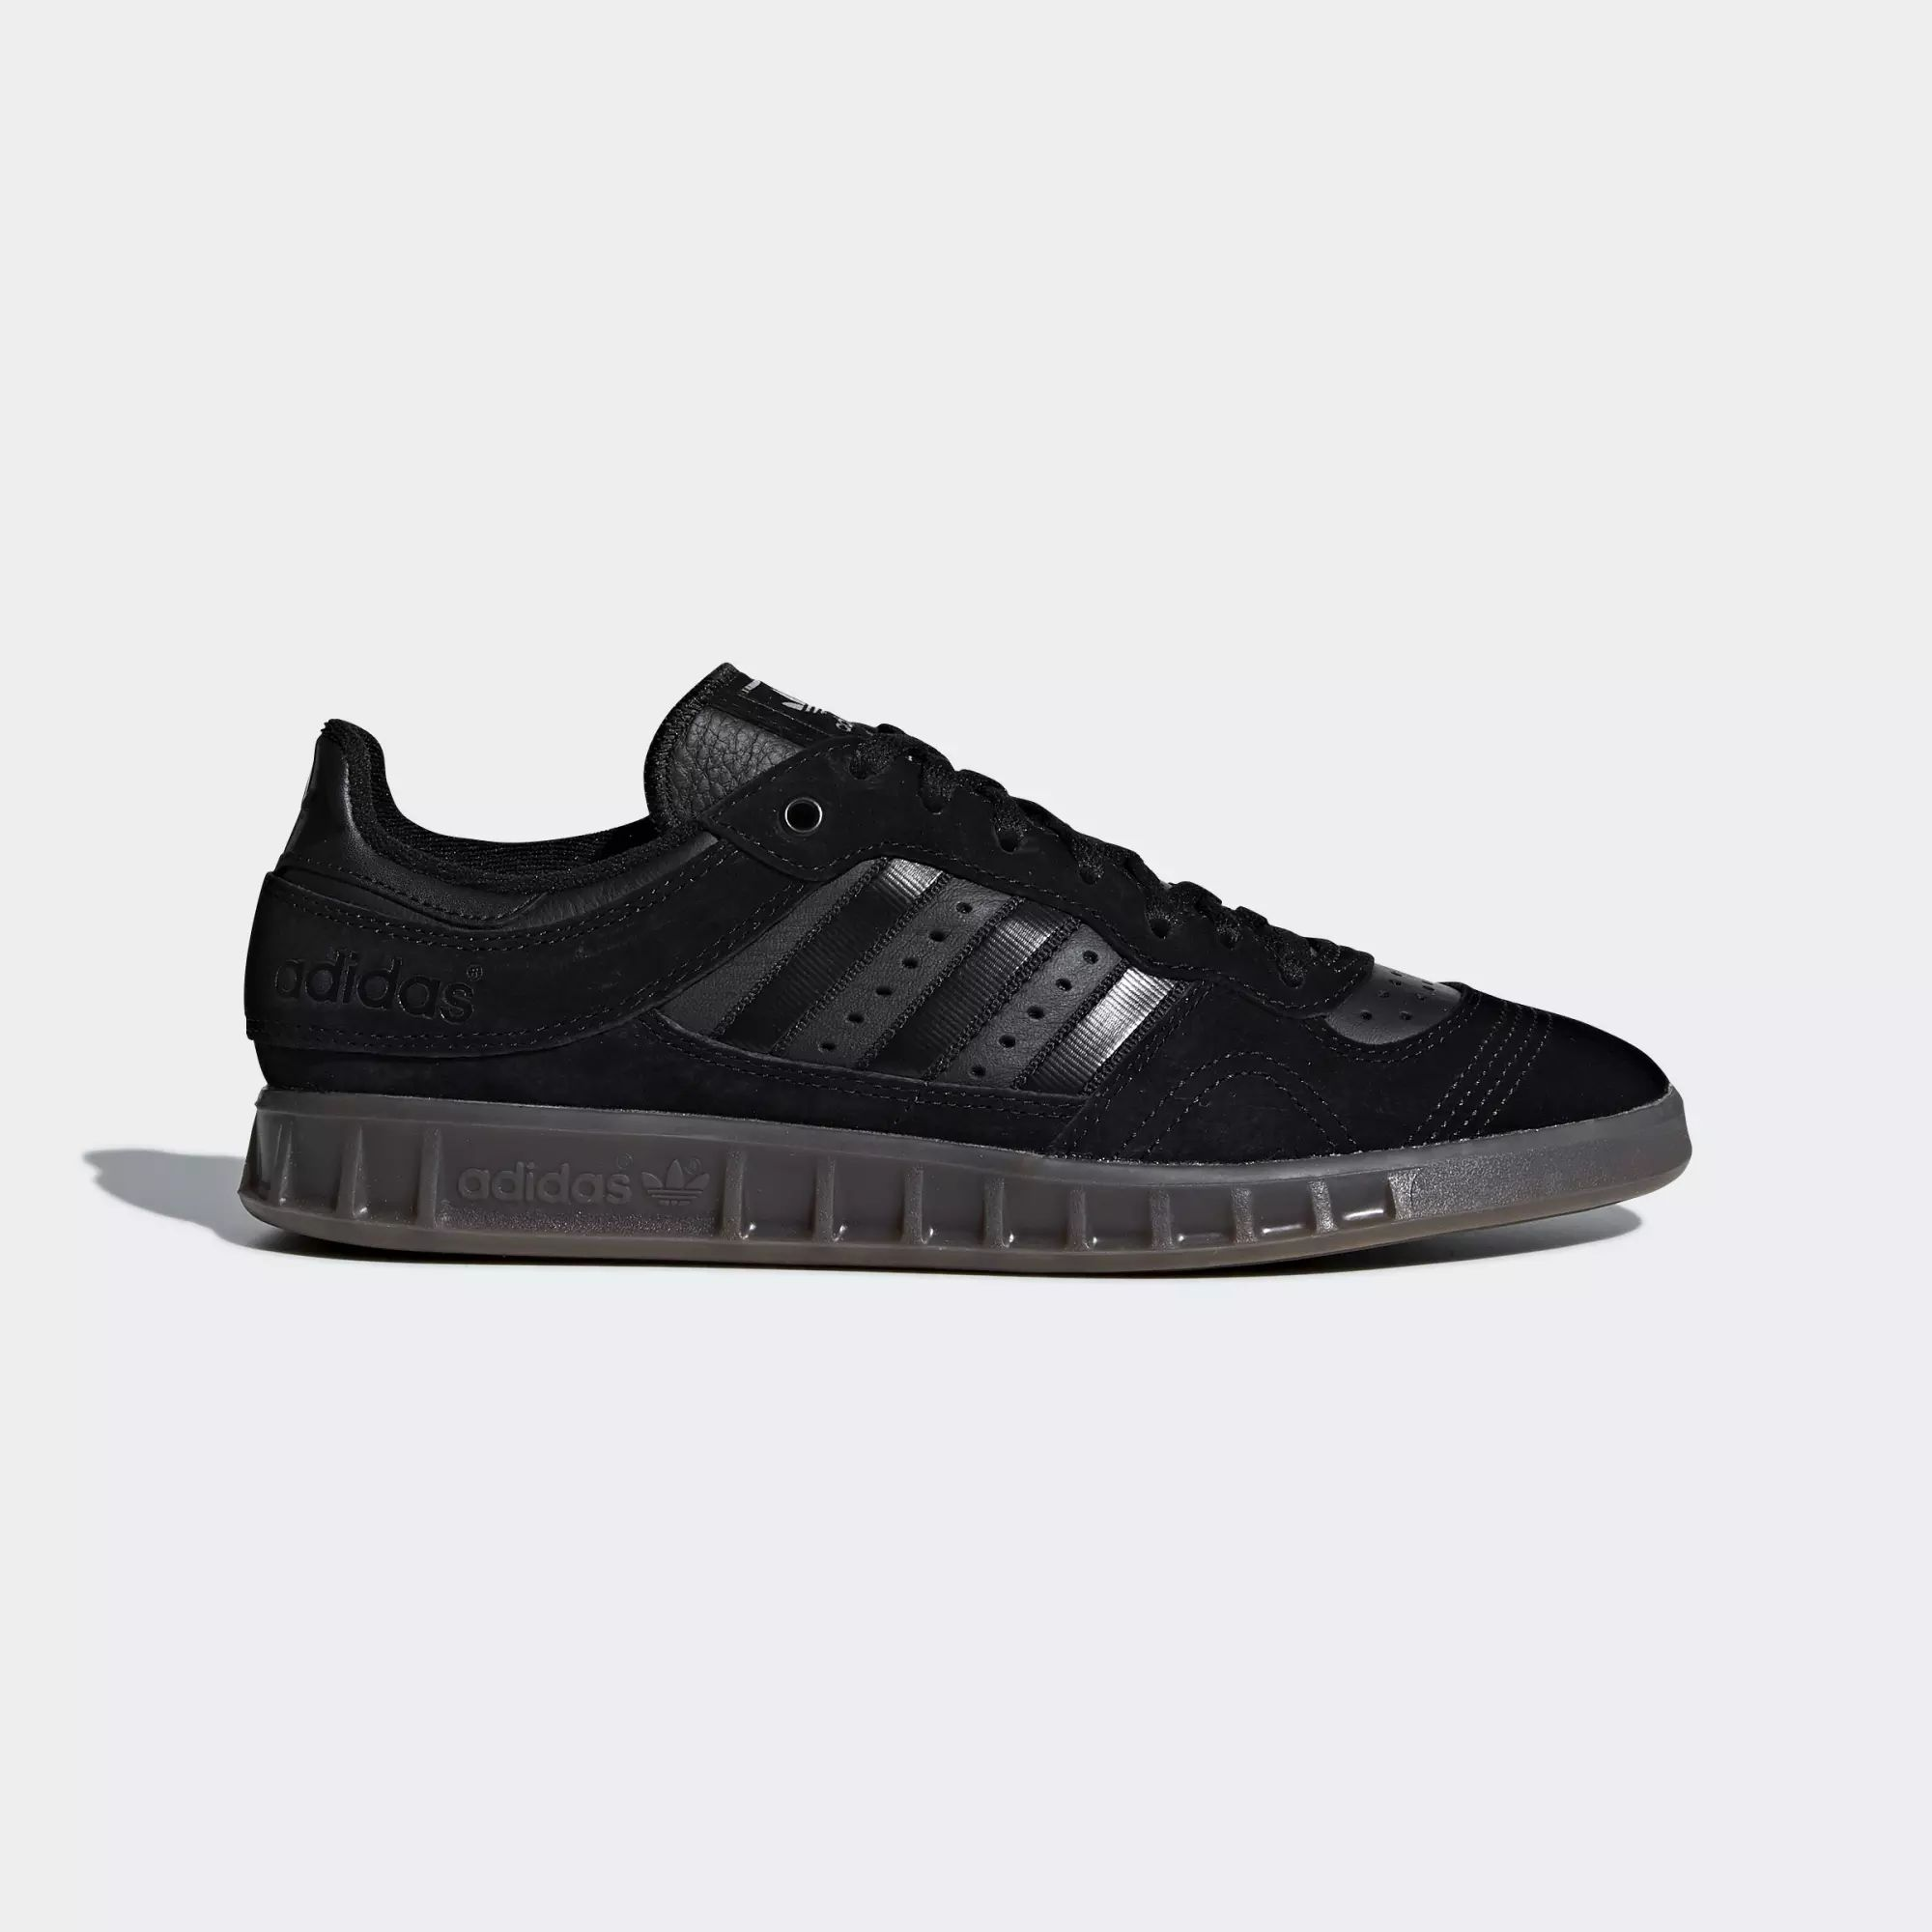 Adidas Handball Top Shoes - Core Black / Core Black / Gum